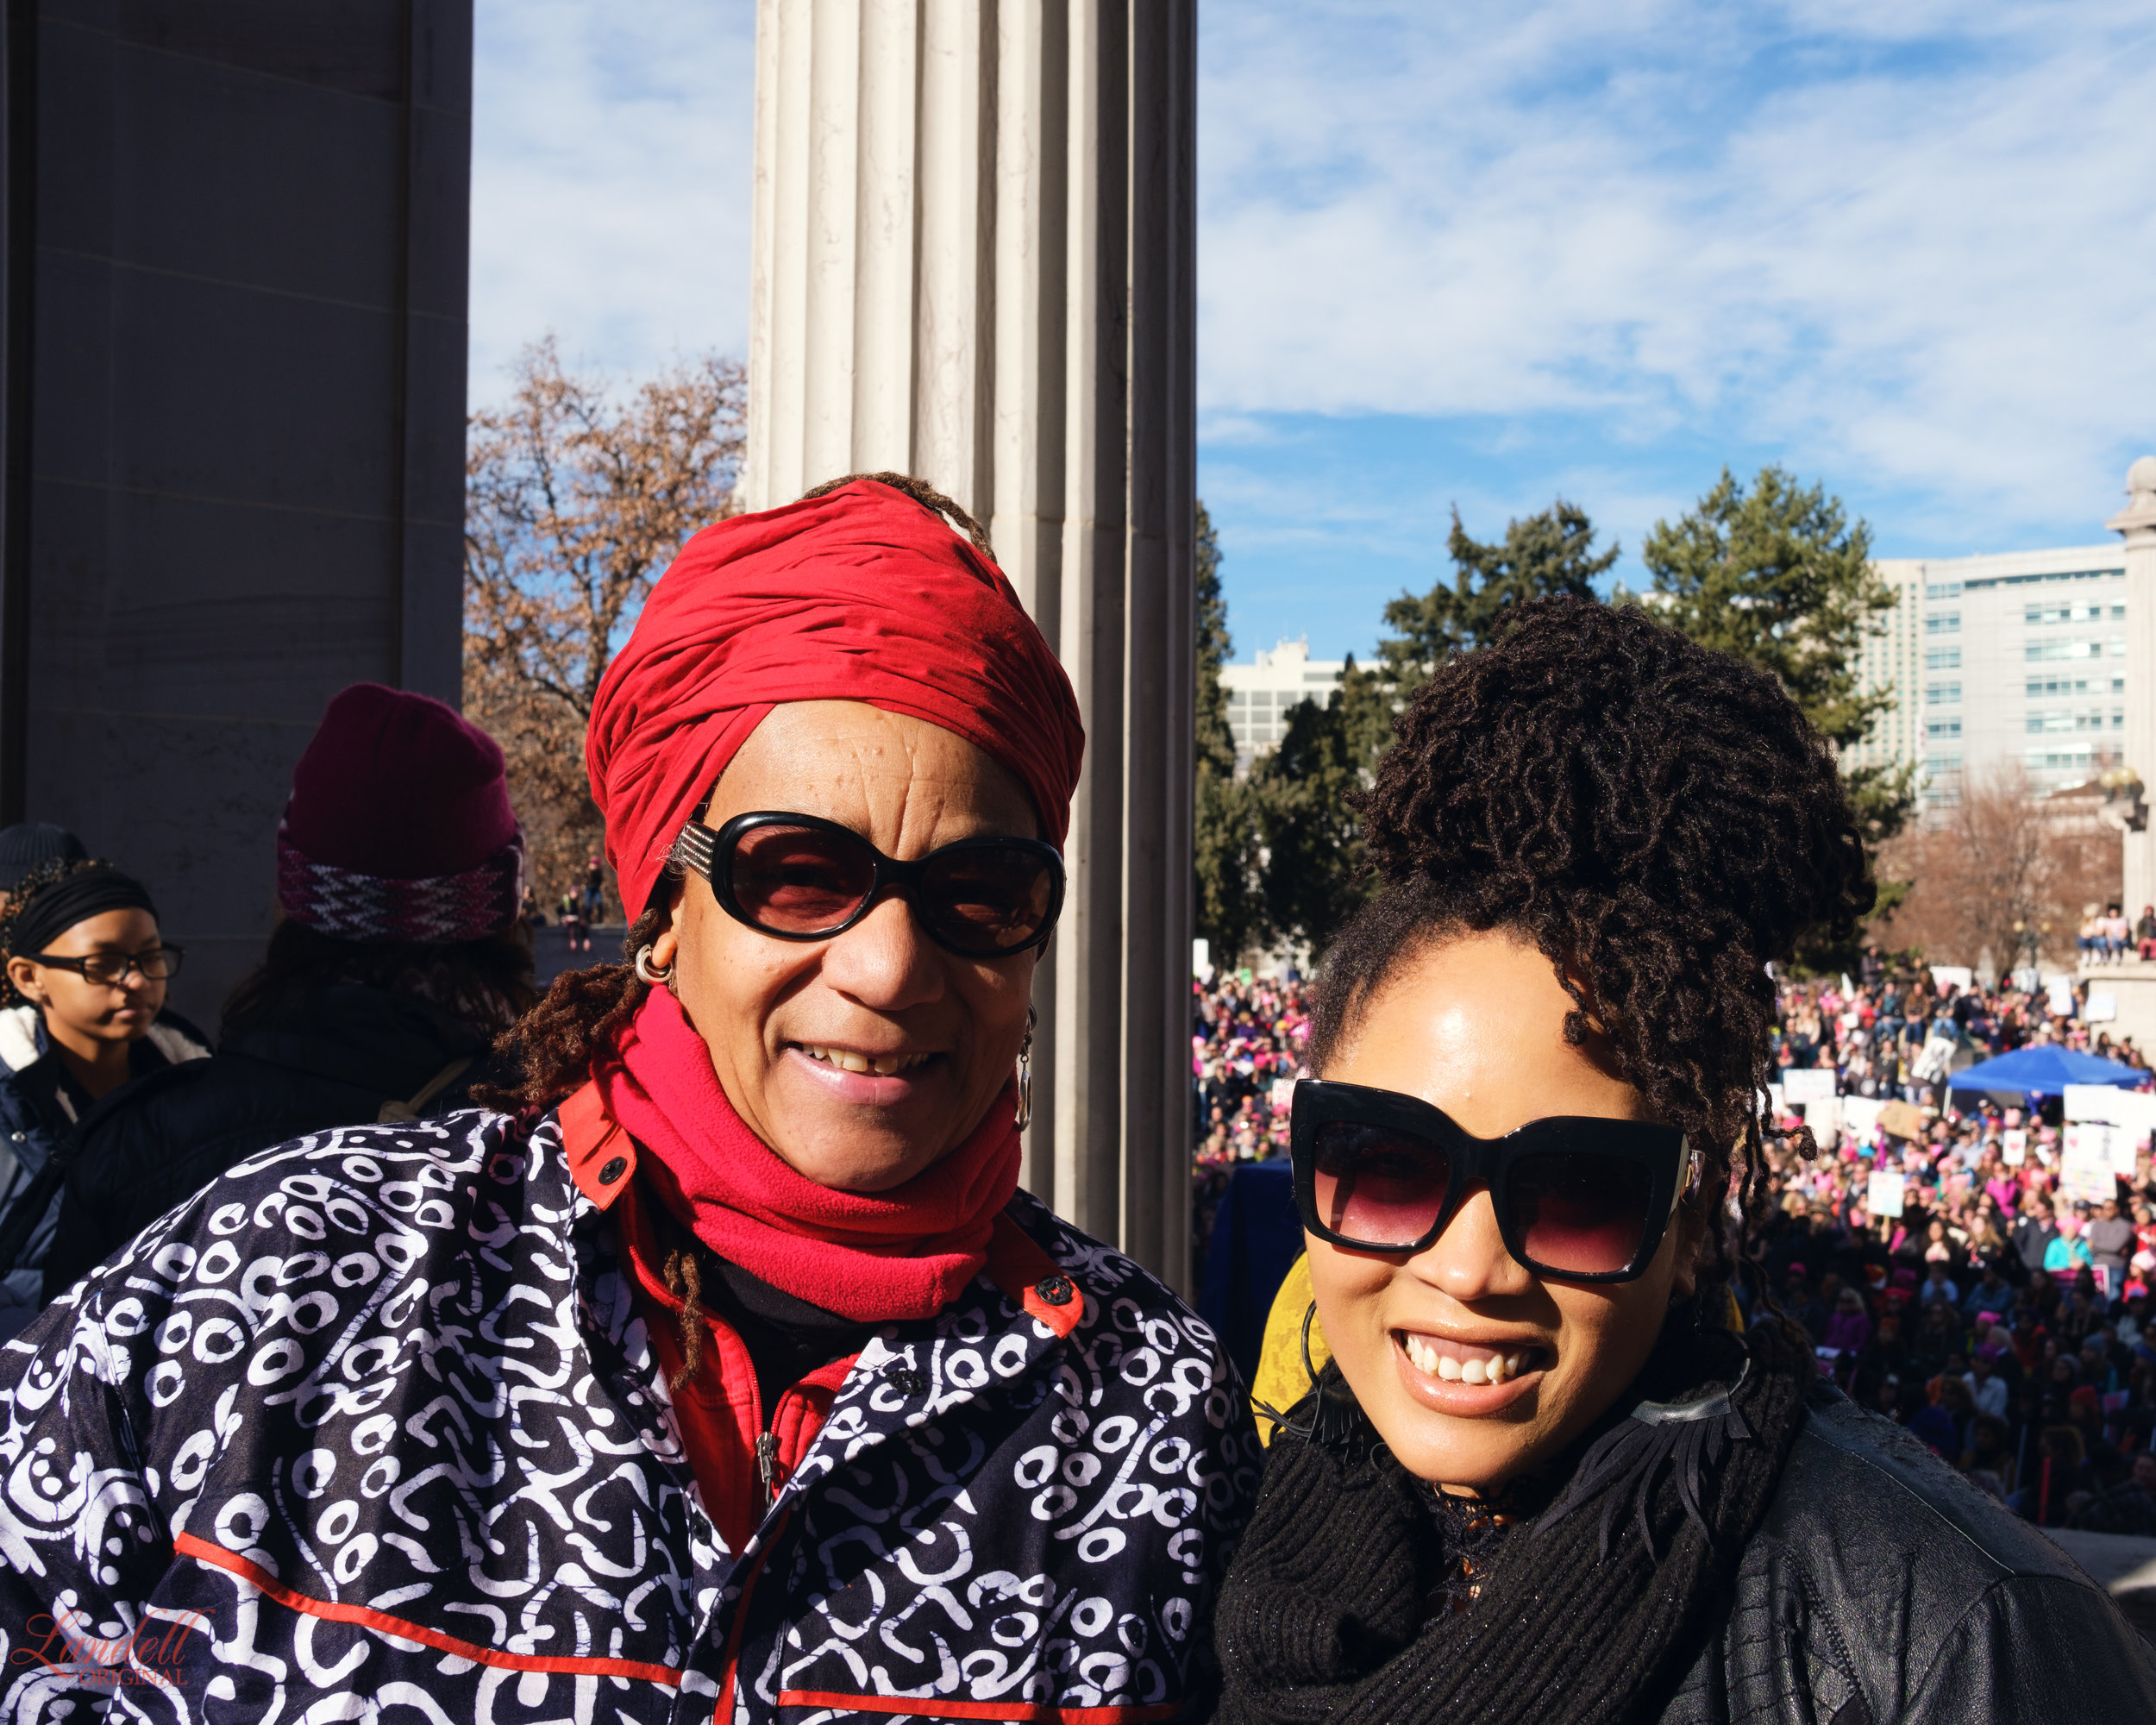 DENVER_WOMENS_MARCH-2018_01-20-2018_0092.jpg